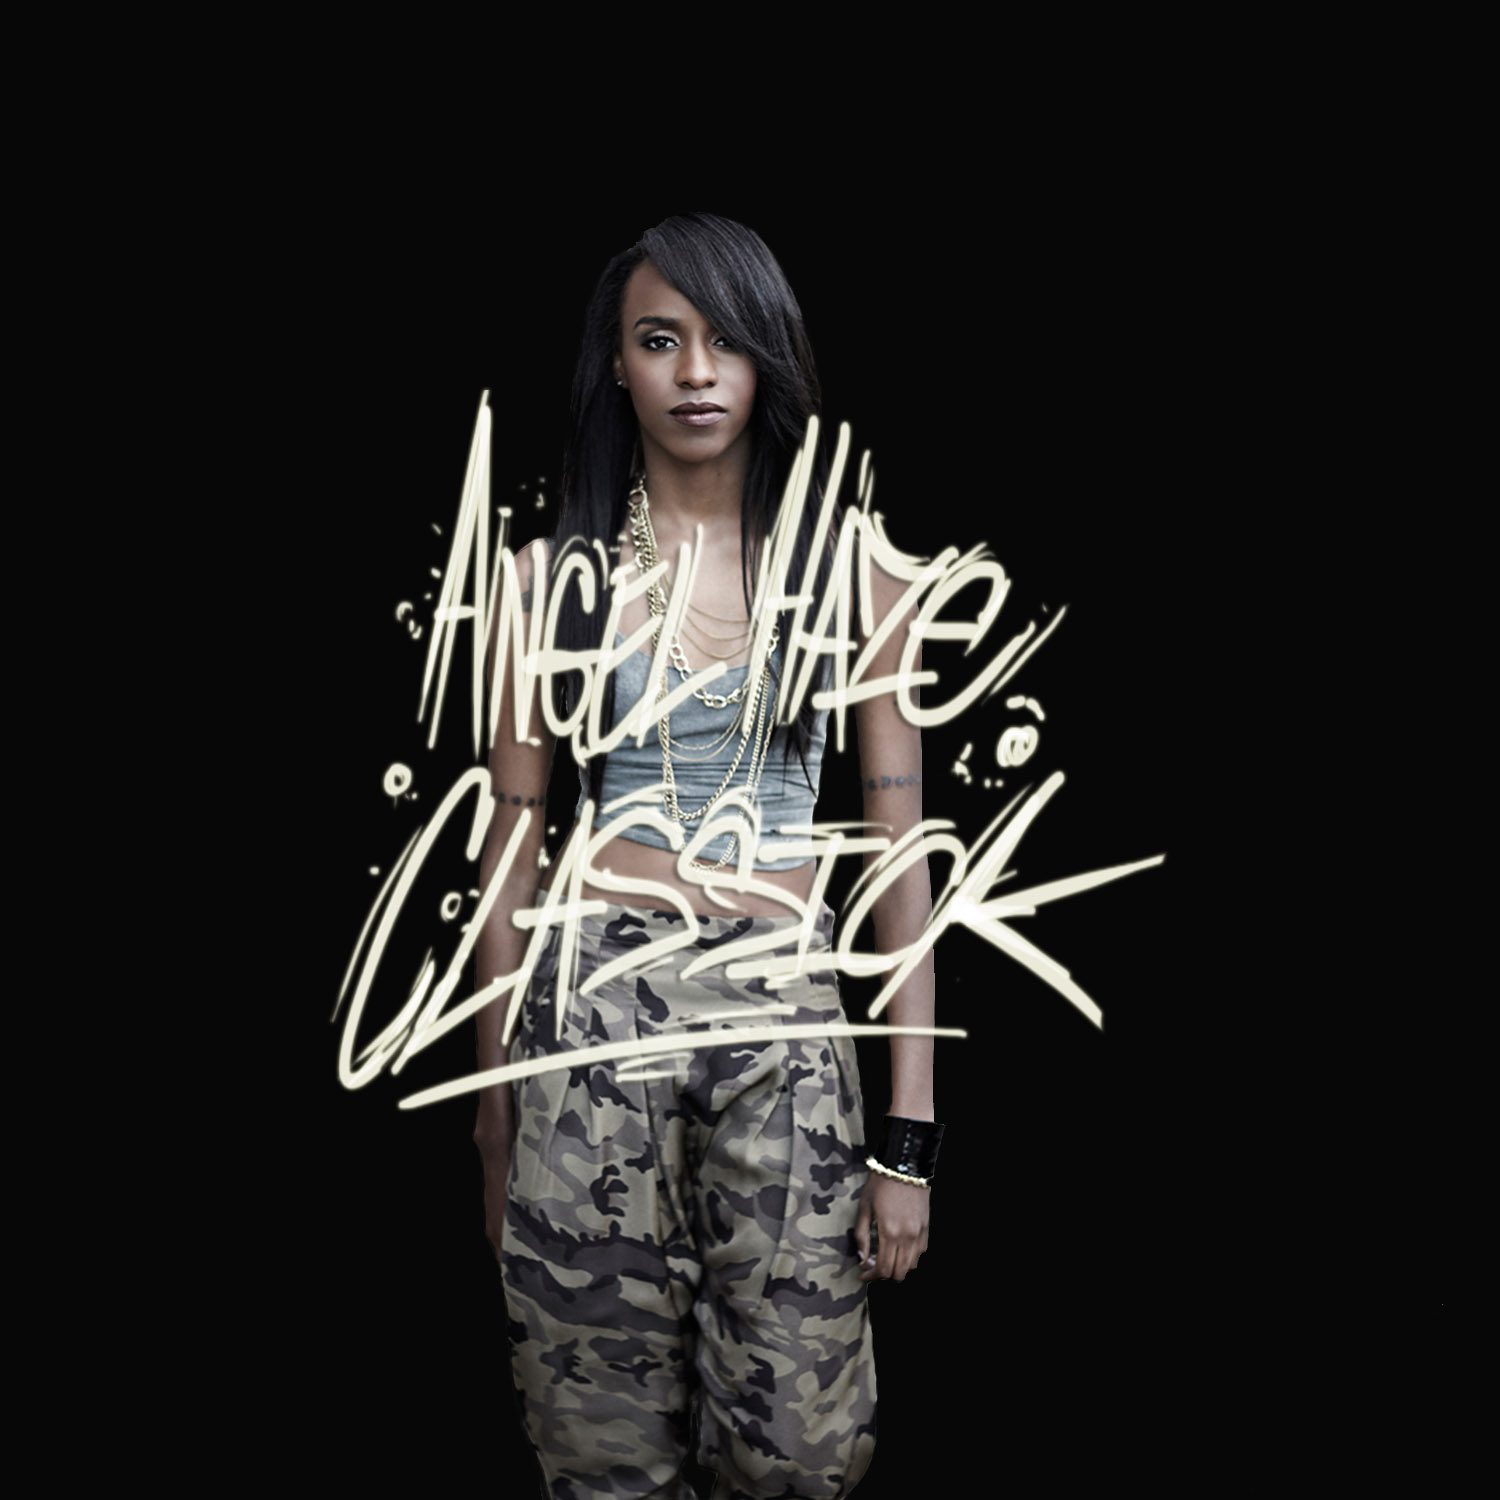 angelhazclassick New Music: Angel Haze   Cleaning Out My Closet